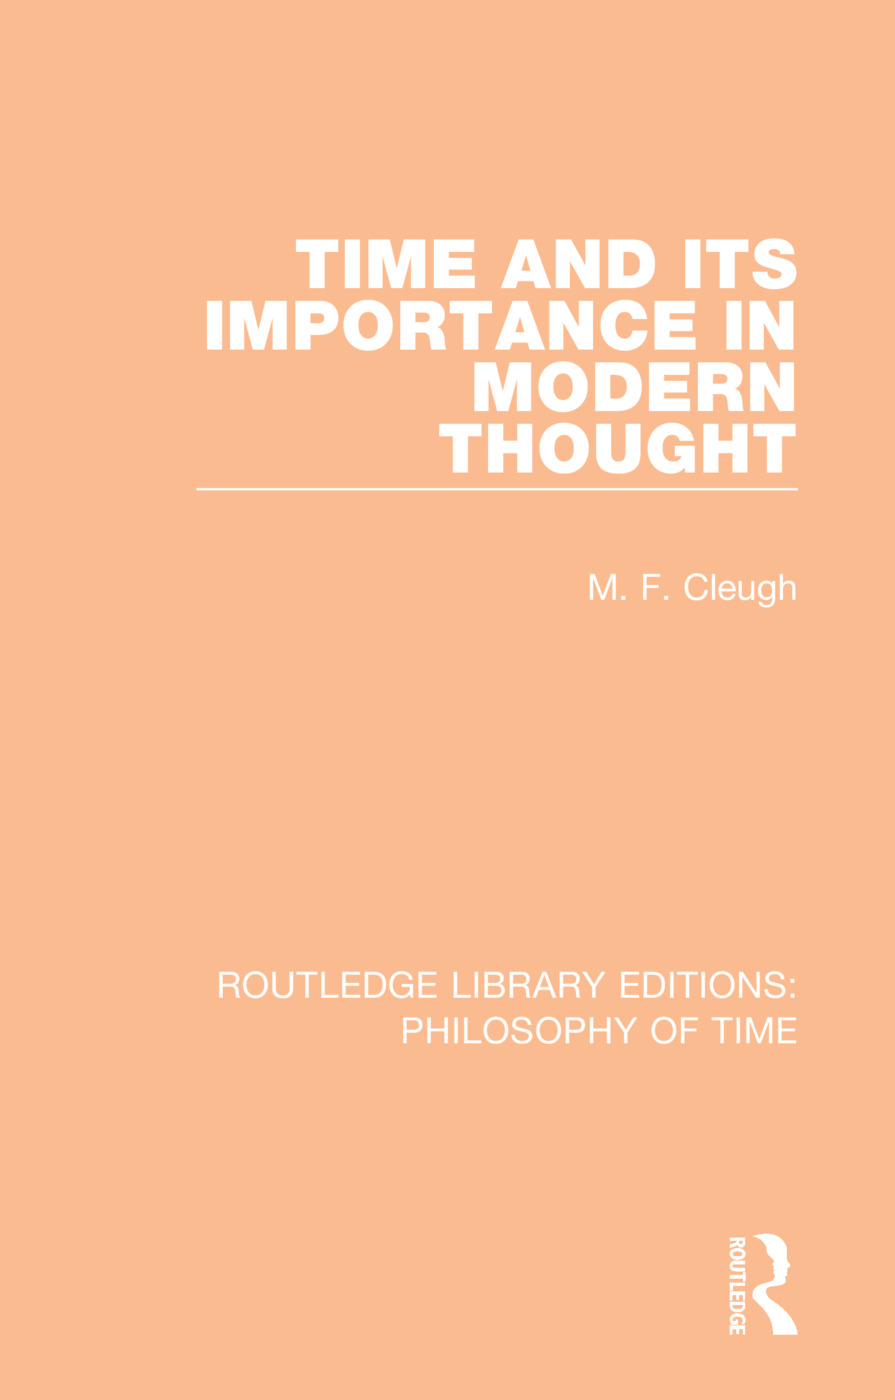 Time and its Importance in Modern Thought book cover